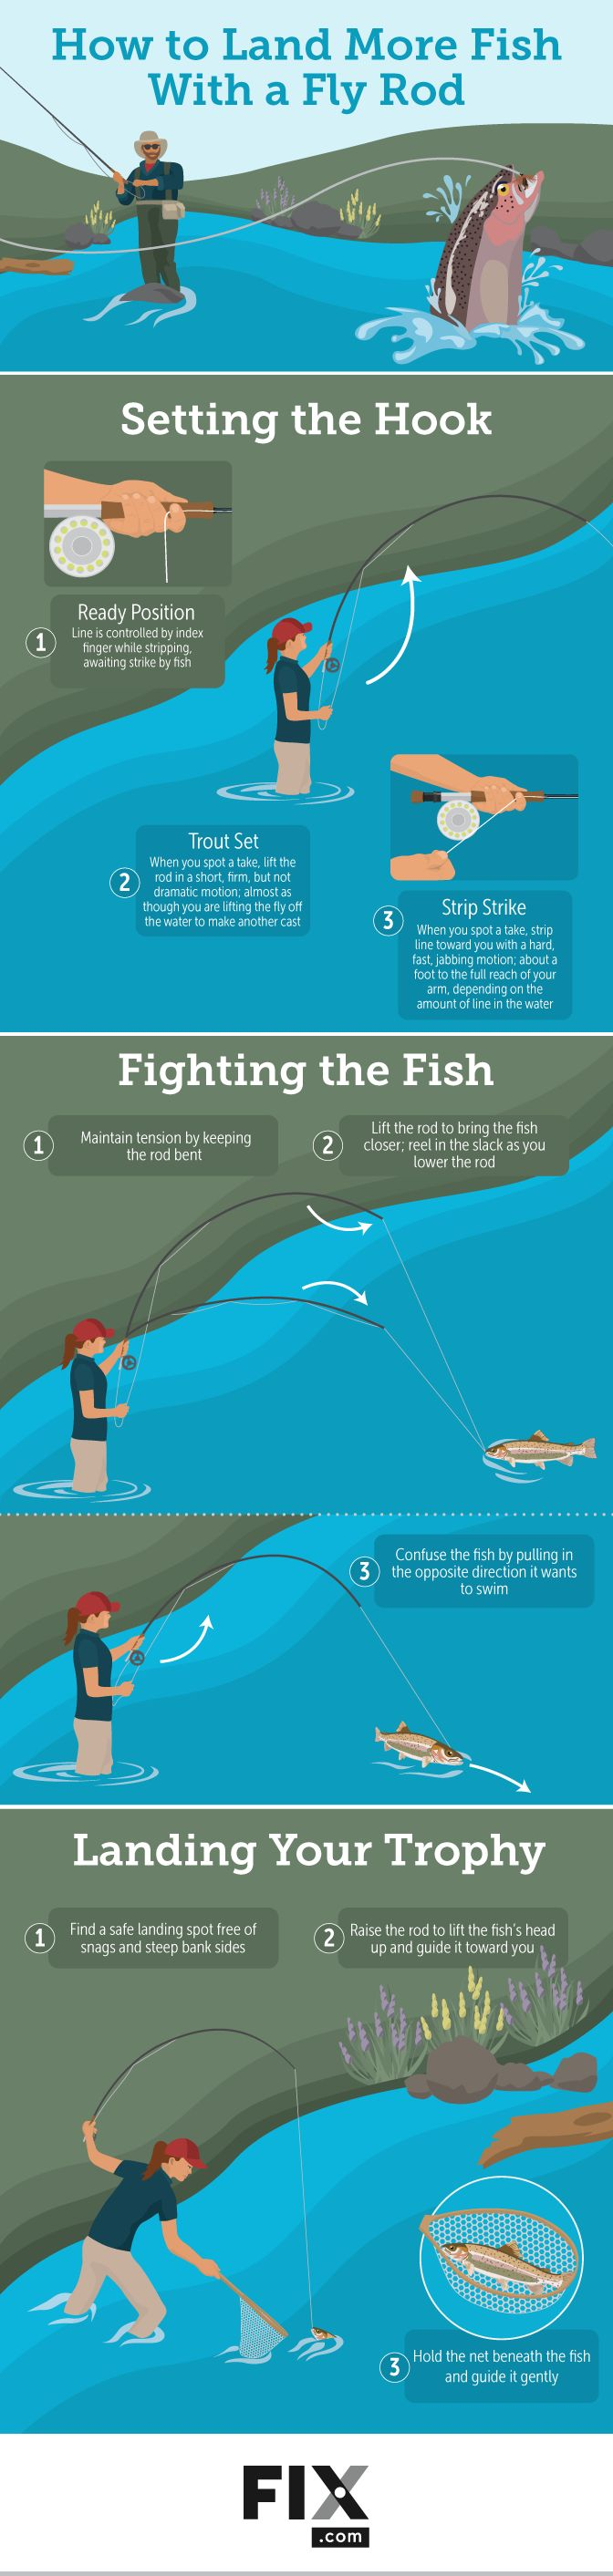 How to Land More Fish With a Fly Rod: Tips and Techniques For Keeping Your Fish On The Line